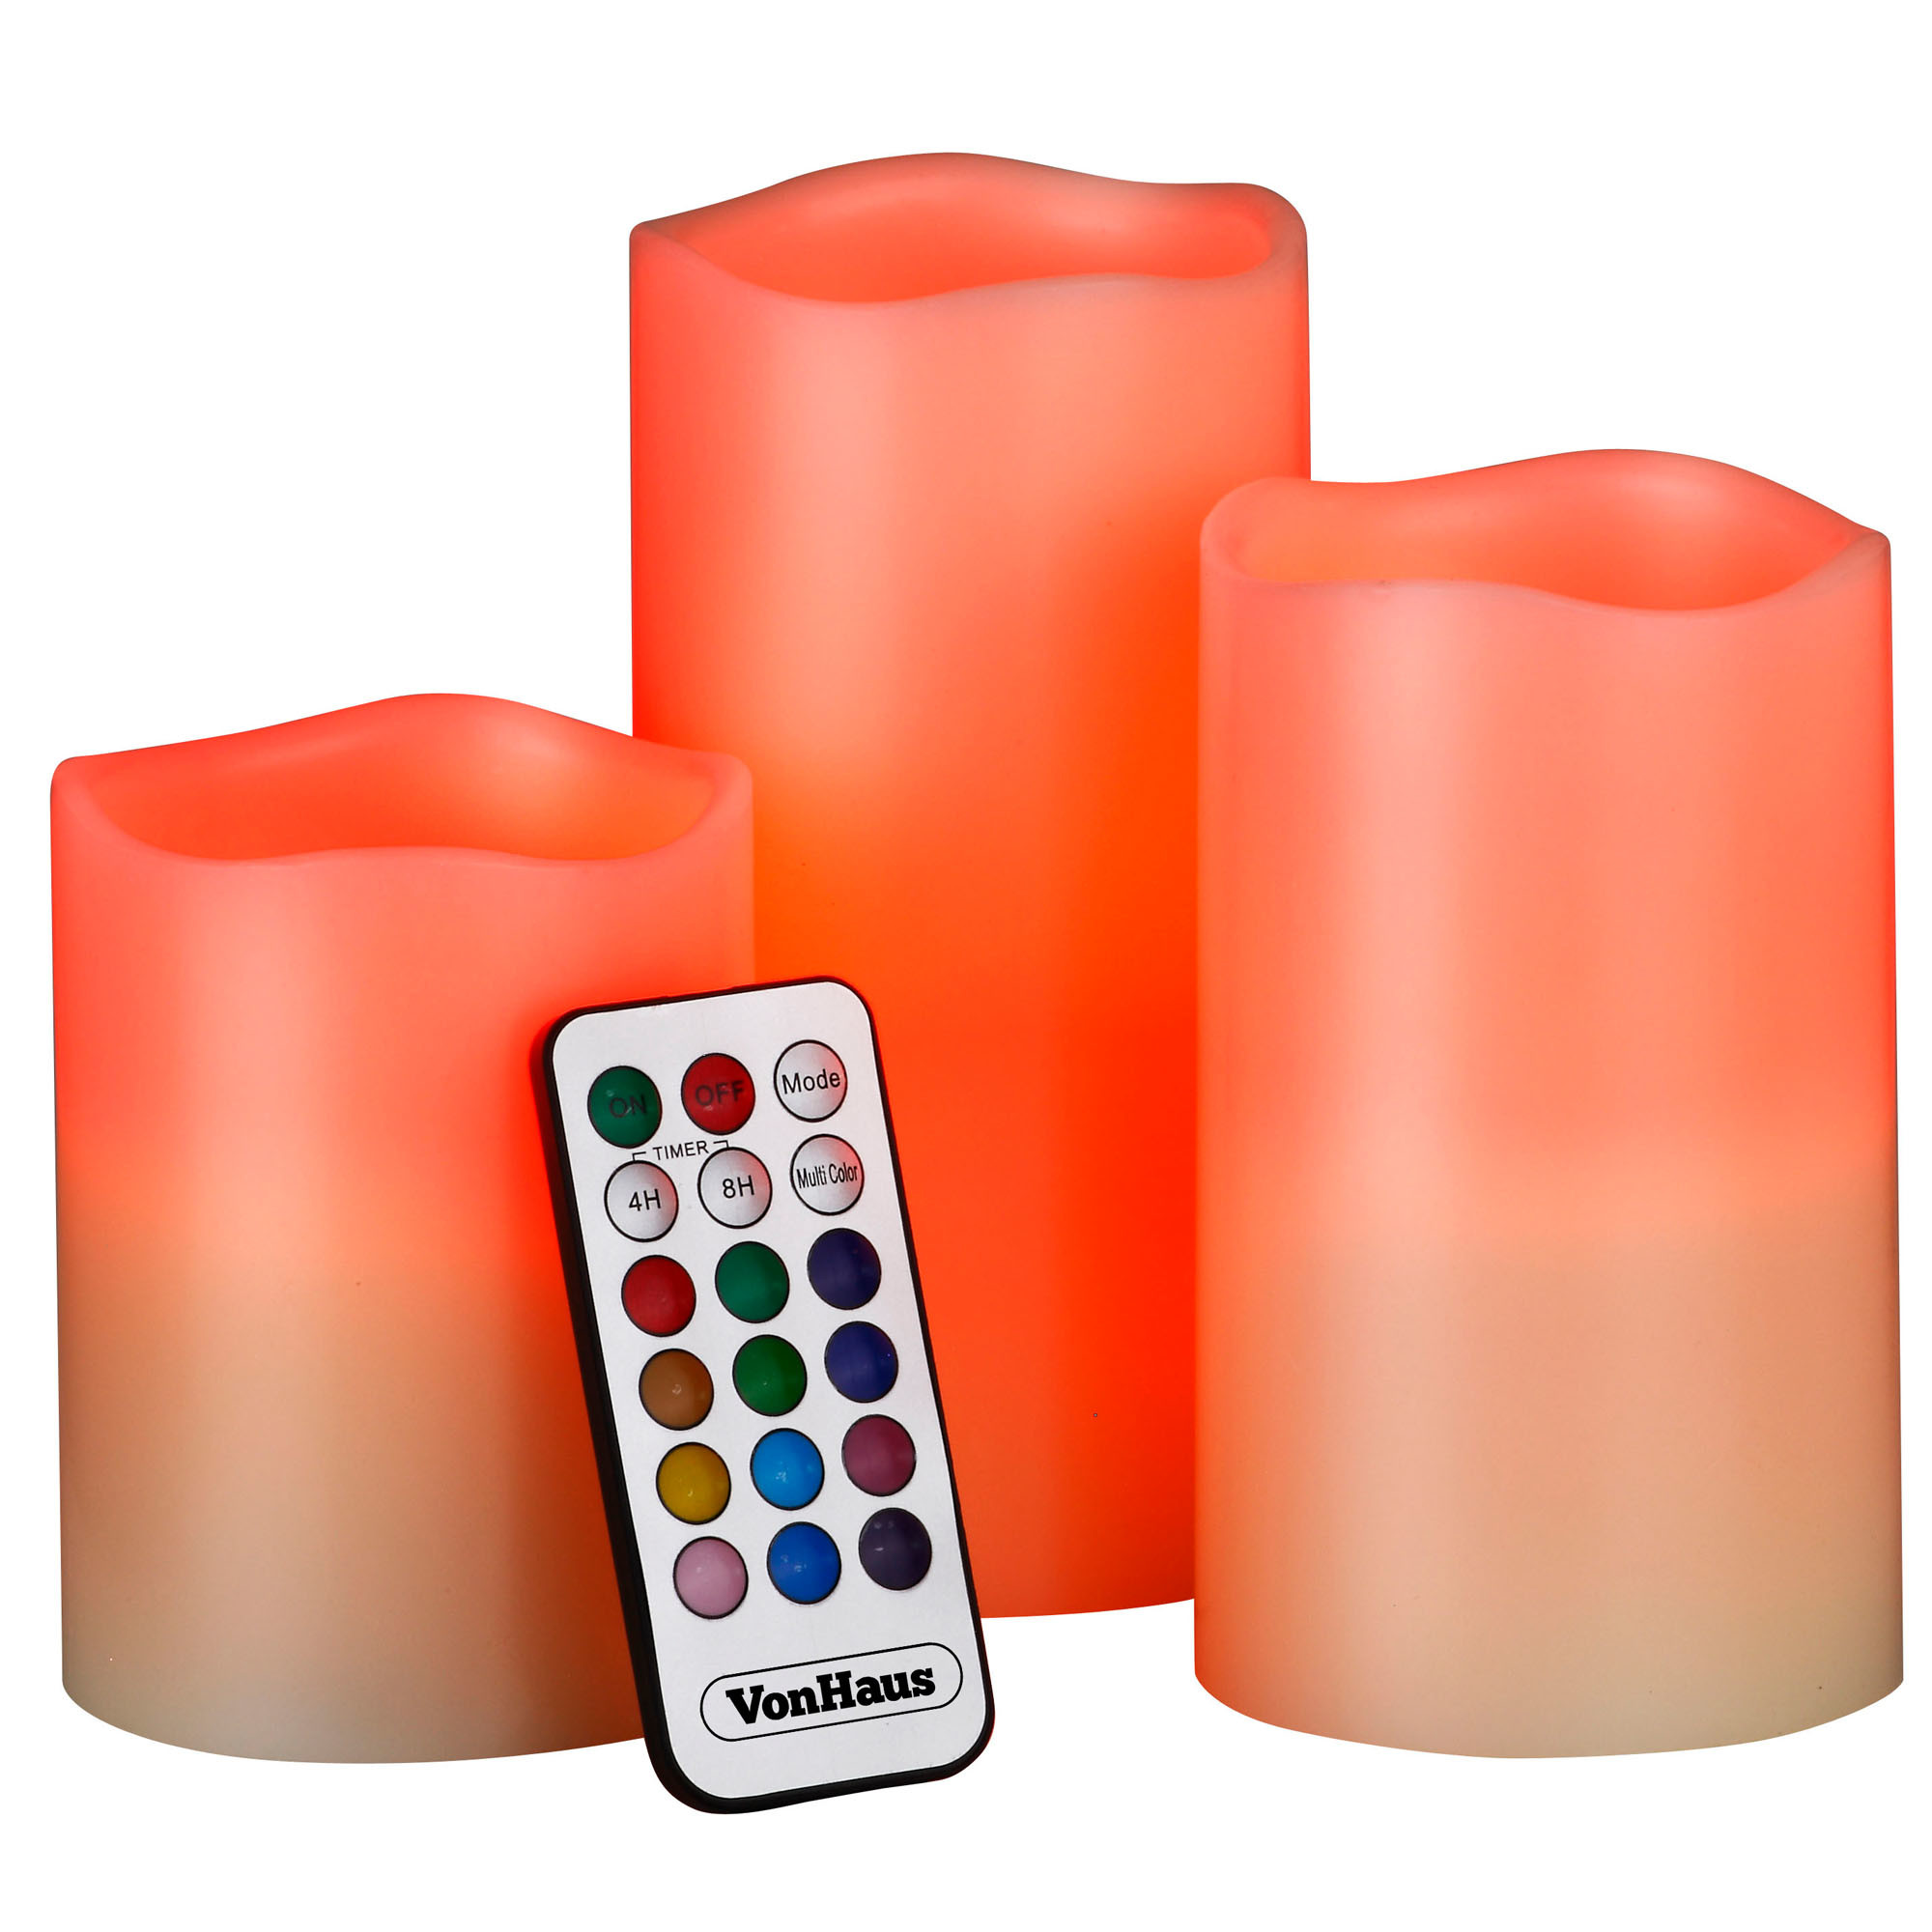 VonHaus 3 Piece Flameless Candle Set & Reviews.